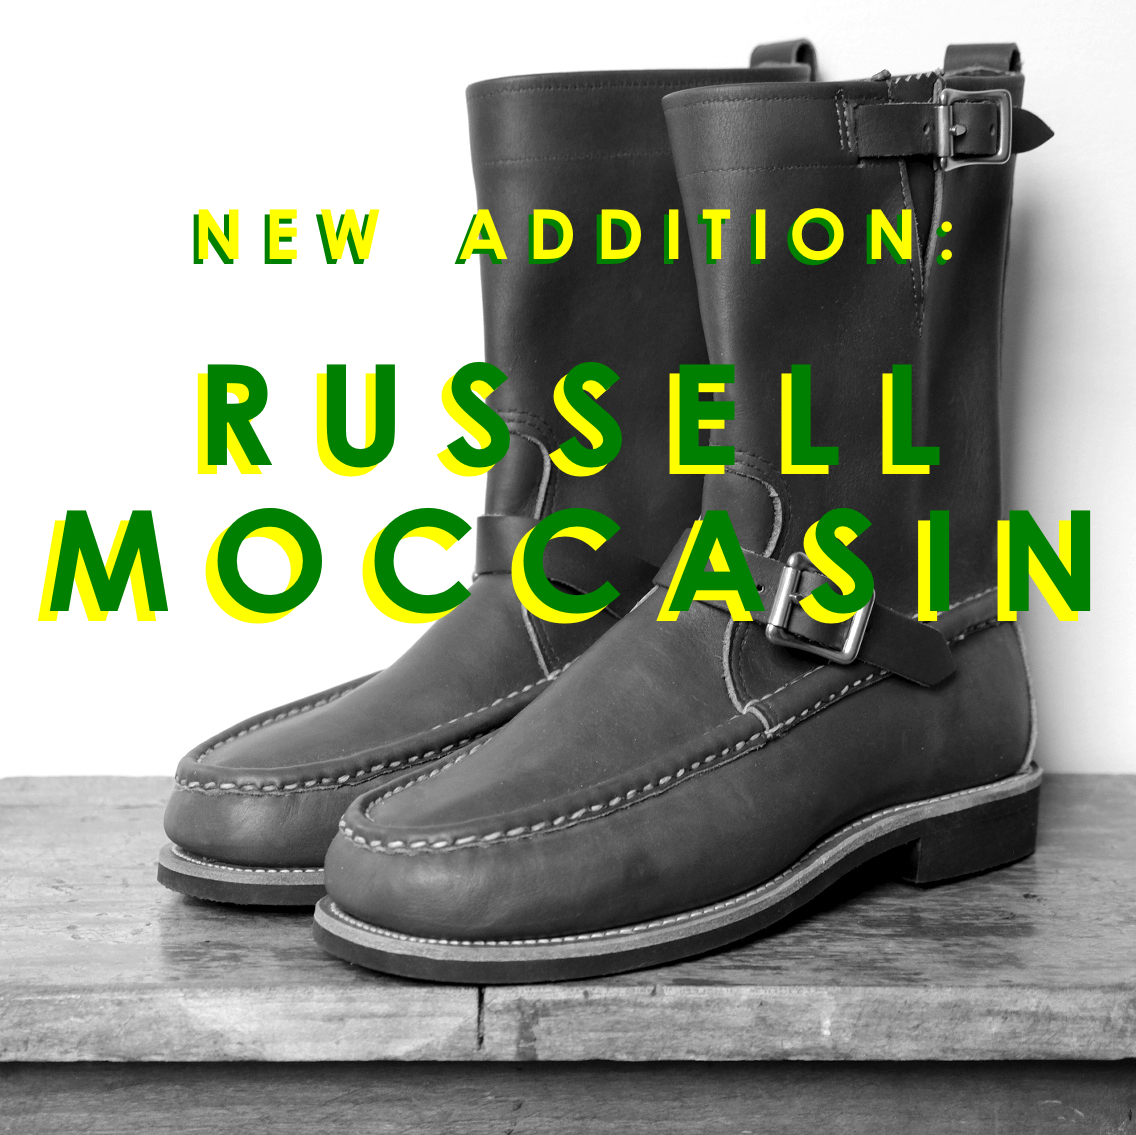 New Russell Moccasins